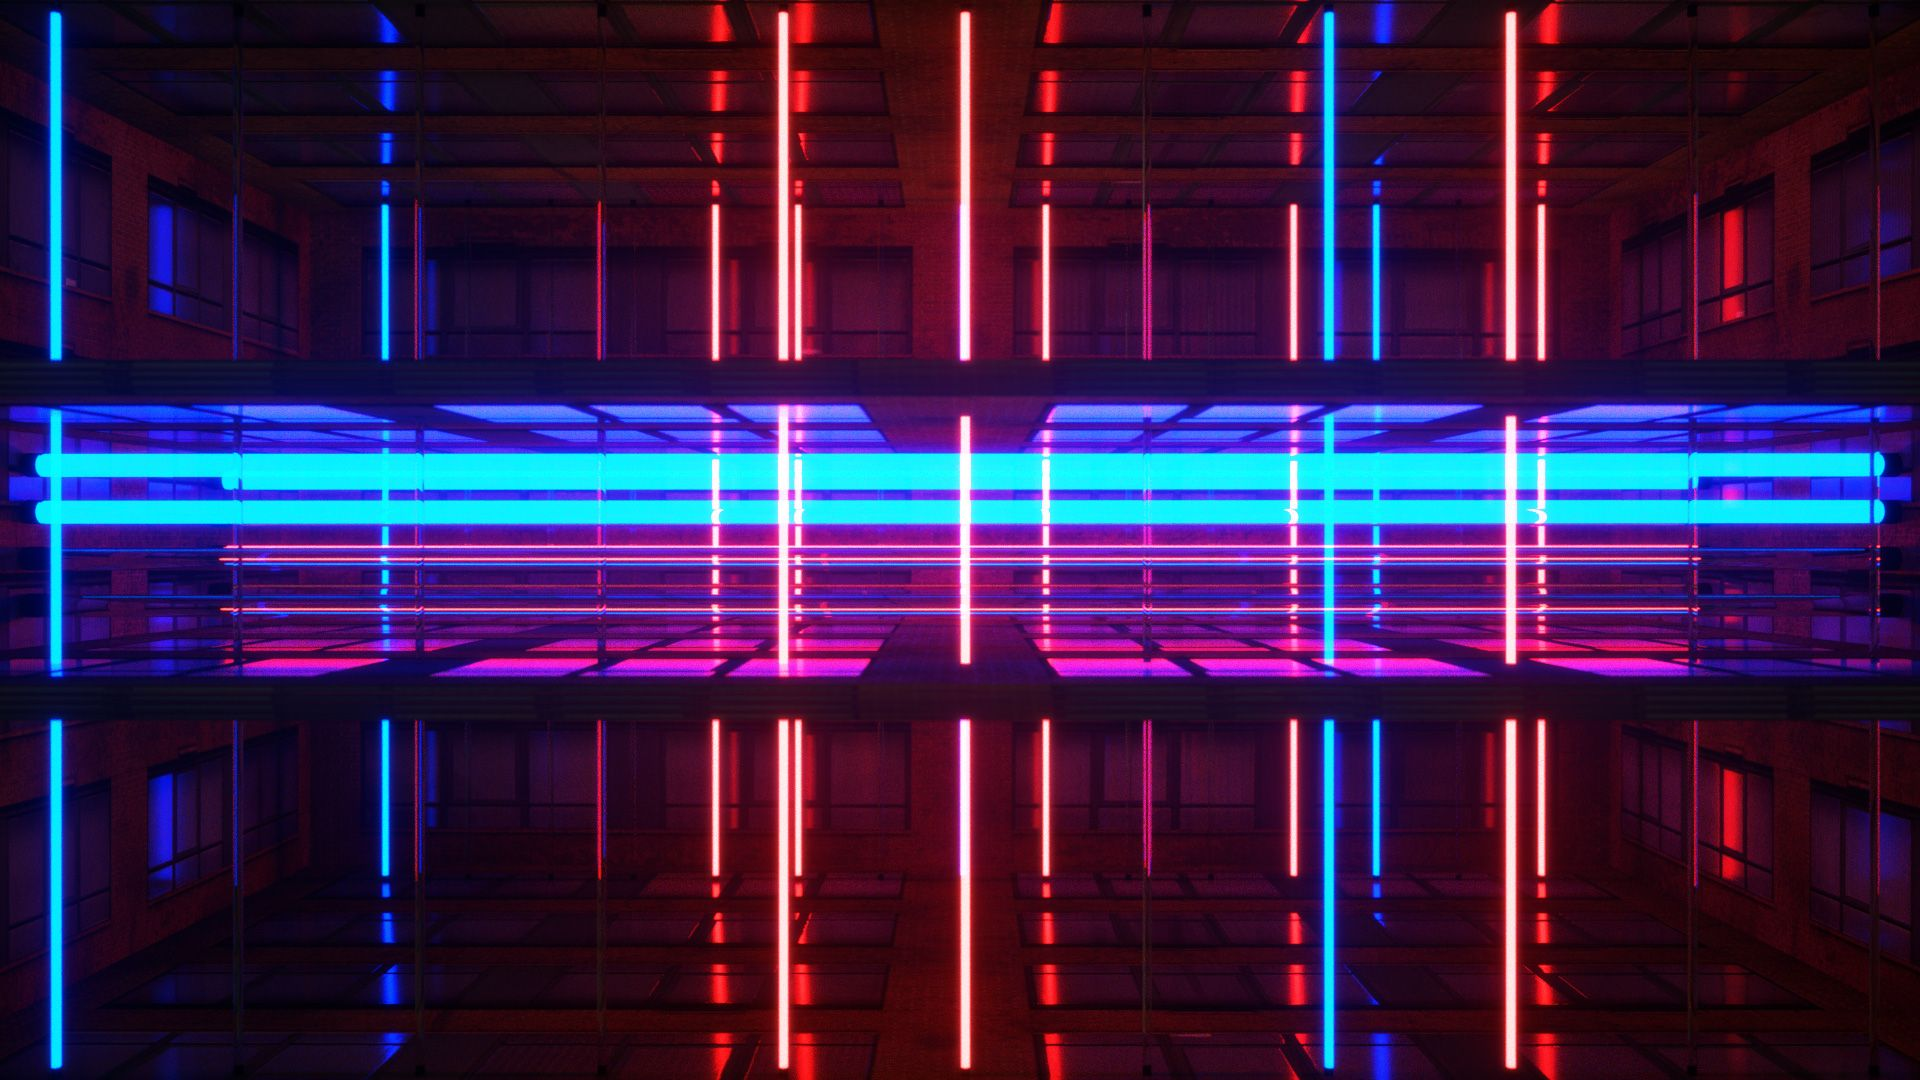 Neon Rooms VJ Loops Pack by Ghosteam   broadcast   Мазда